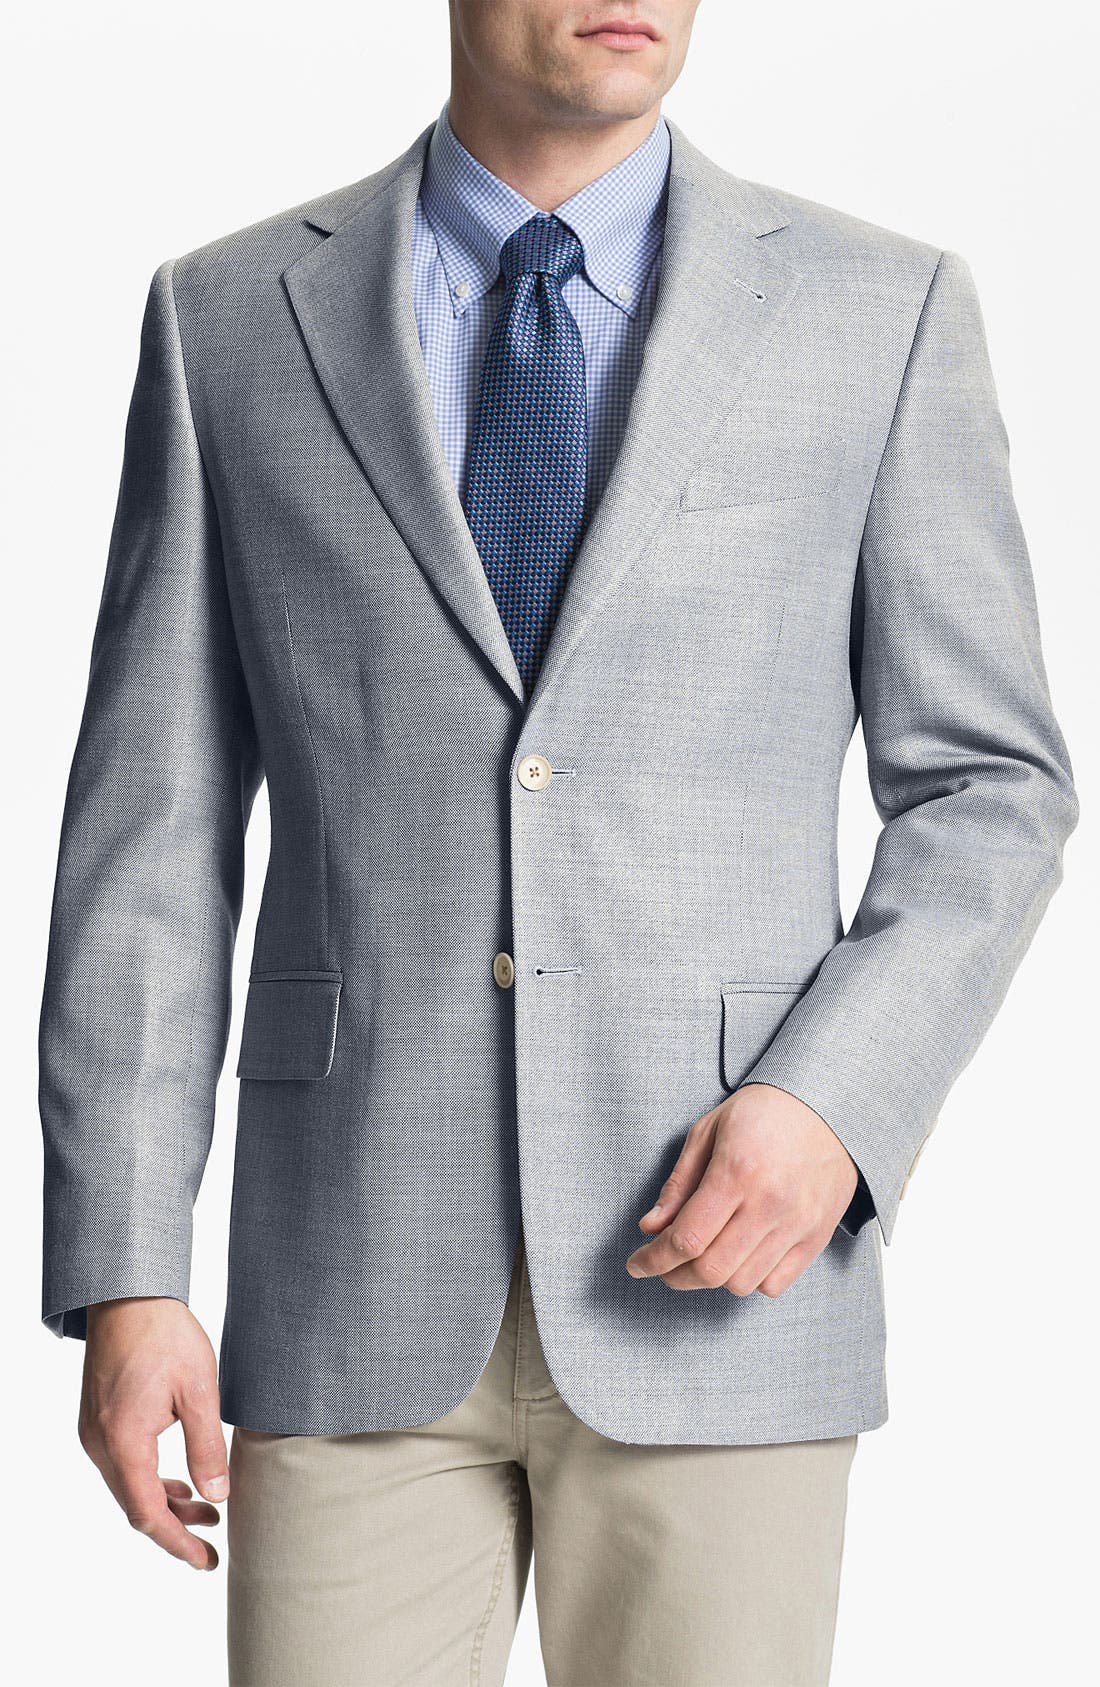 Alternate Image 1 Selected - Joseph Abboud Silk Blend Sportcoat